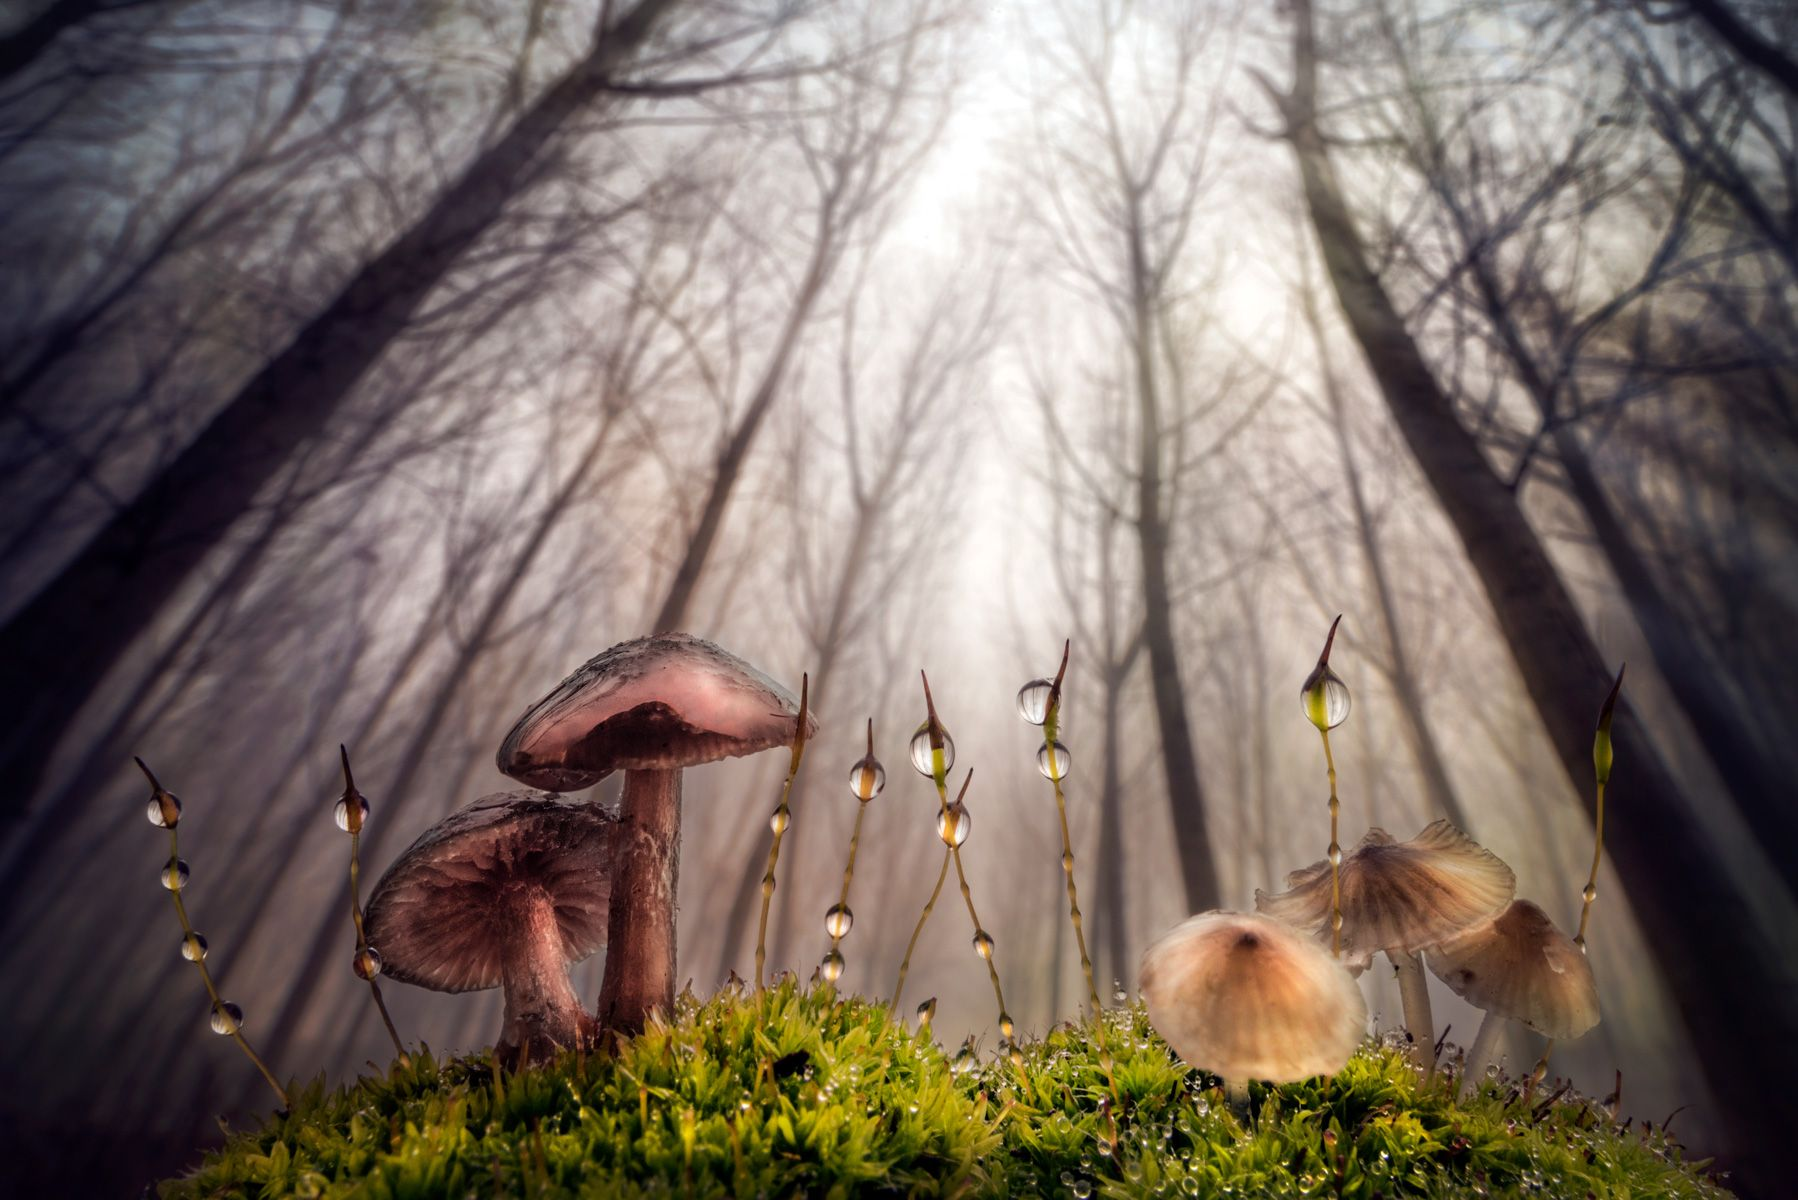 Small and giant creatures of the forest